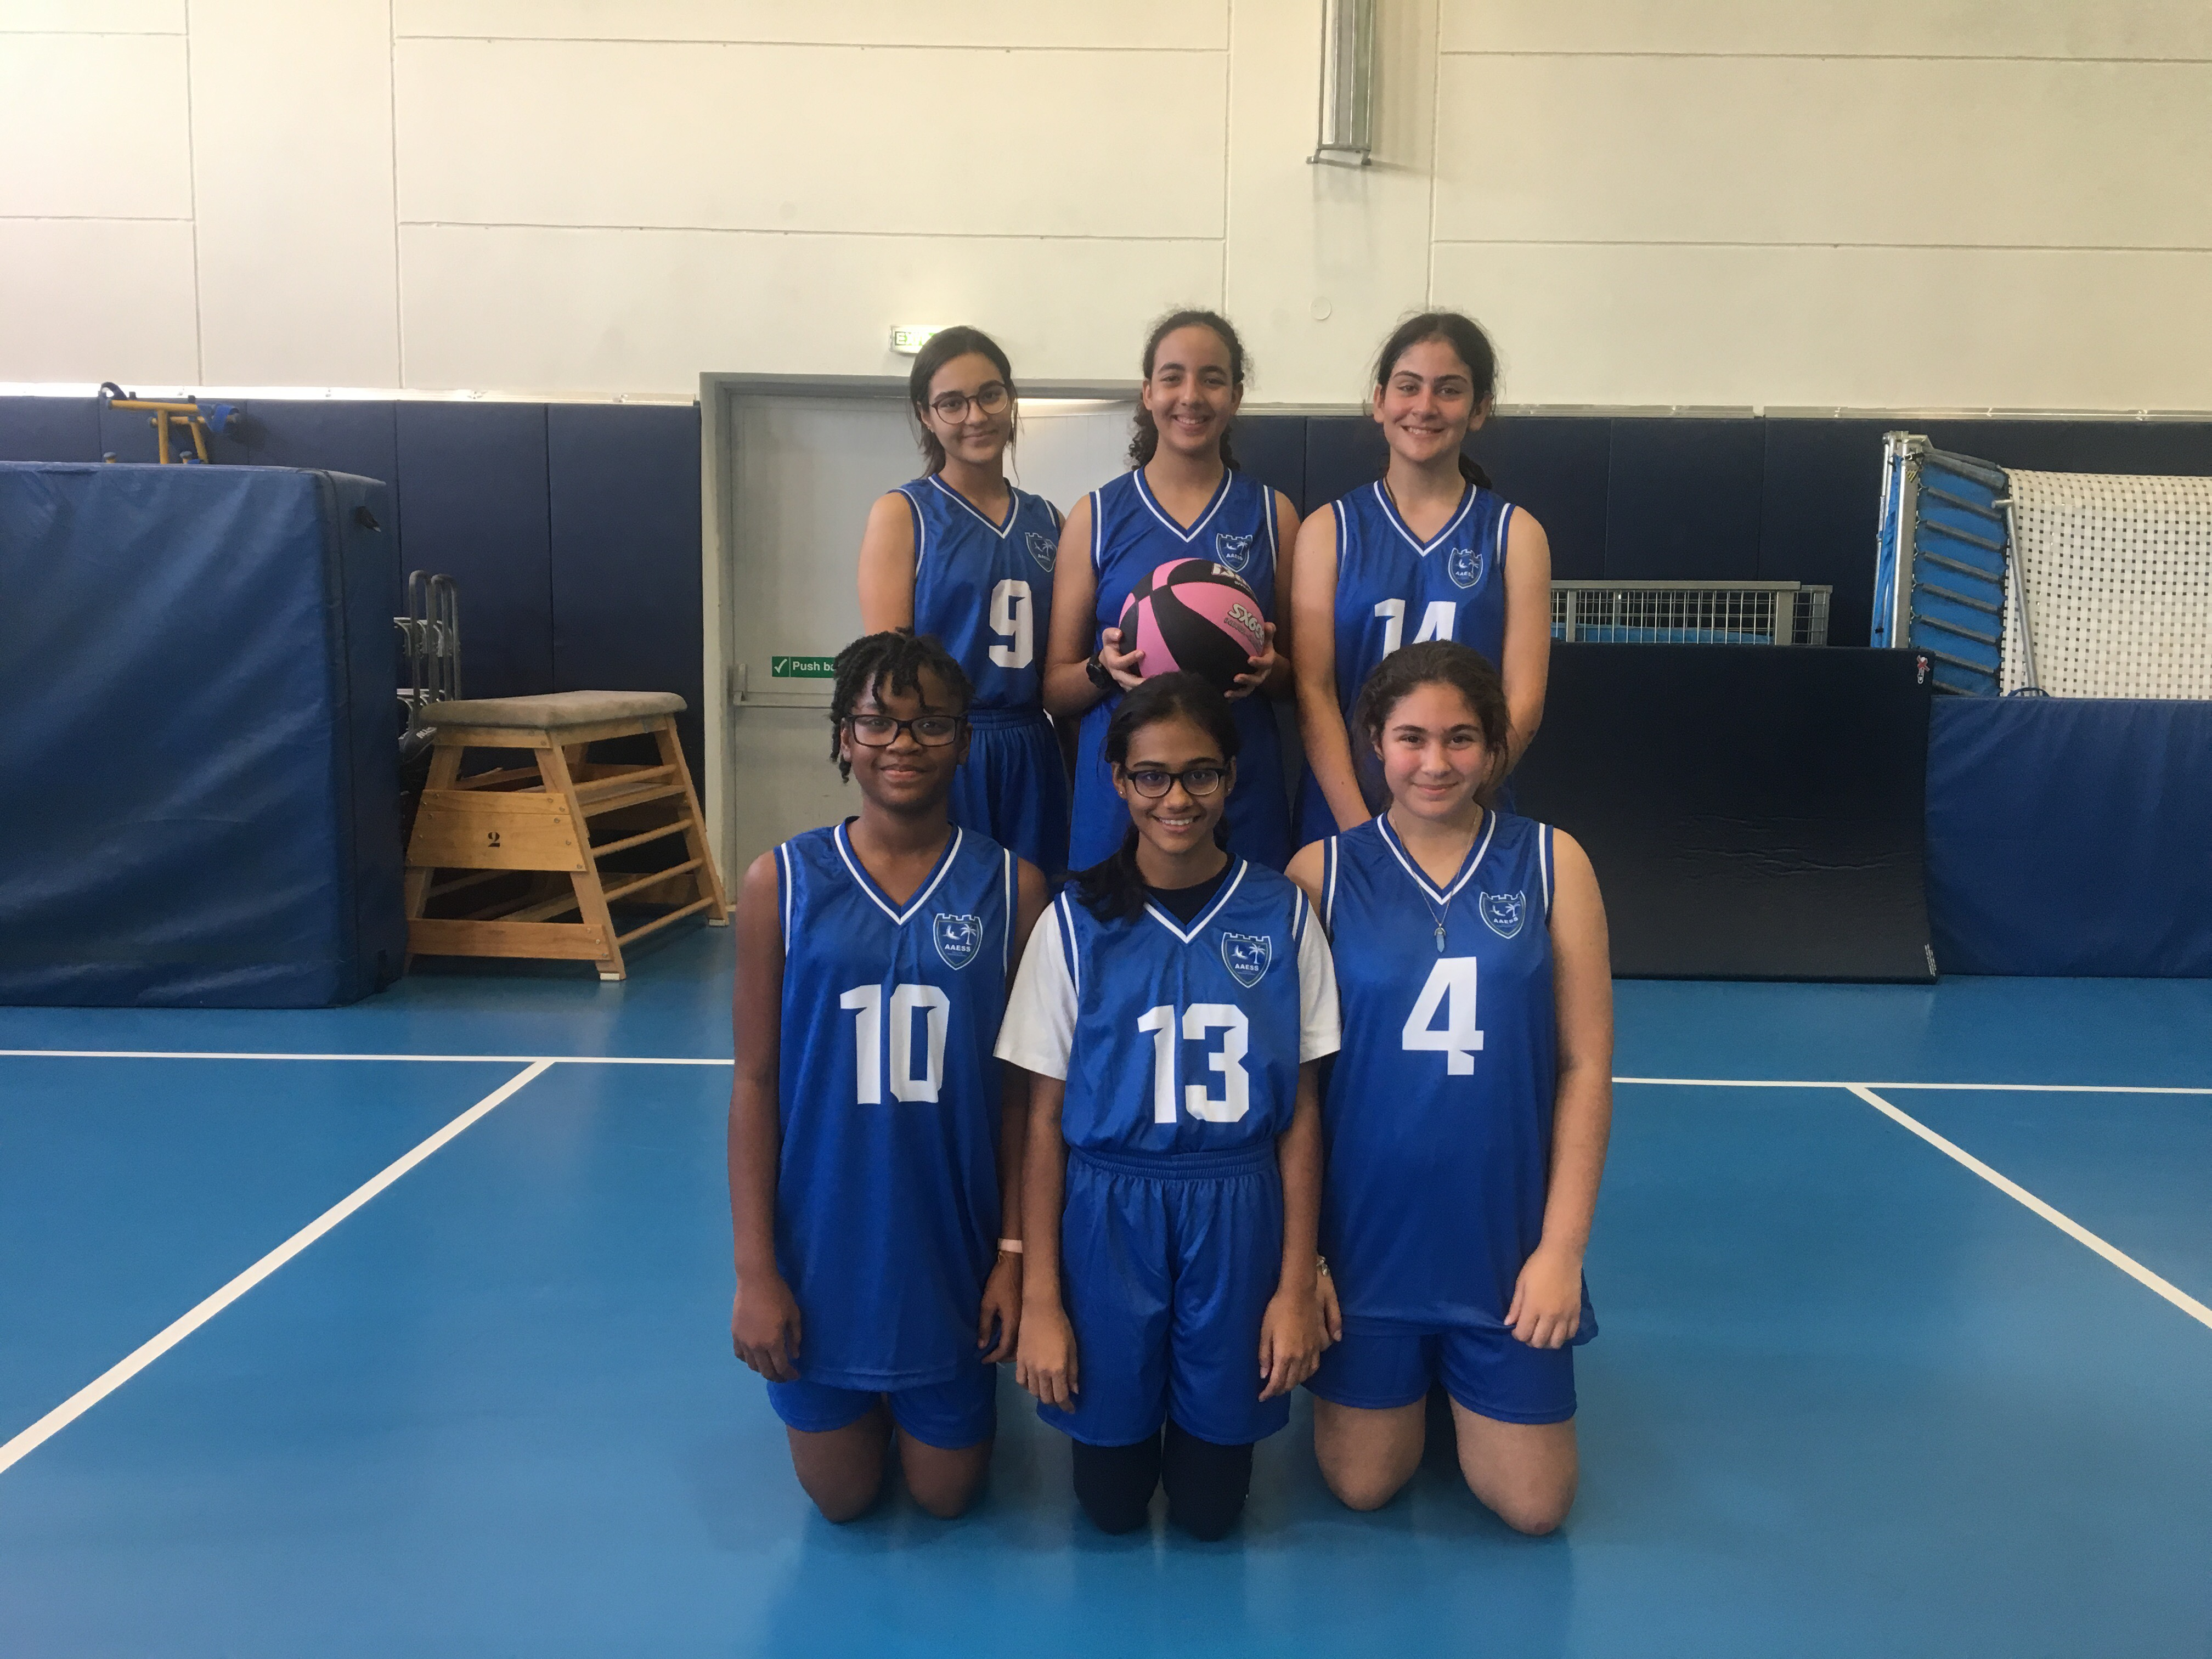 U15 Girls Basketball Tournament